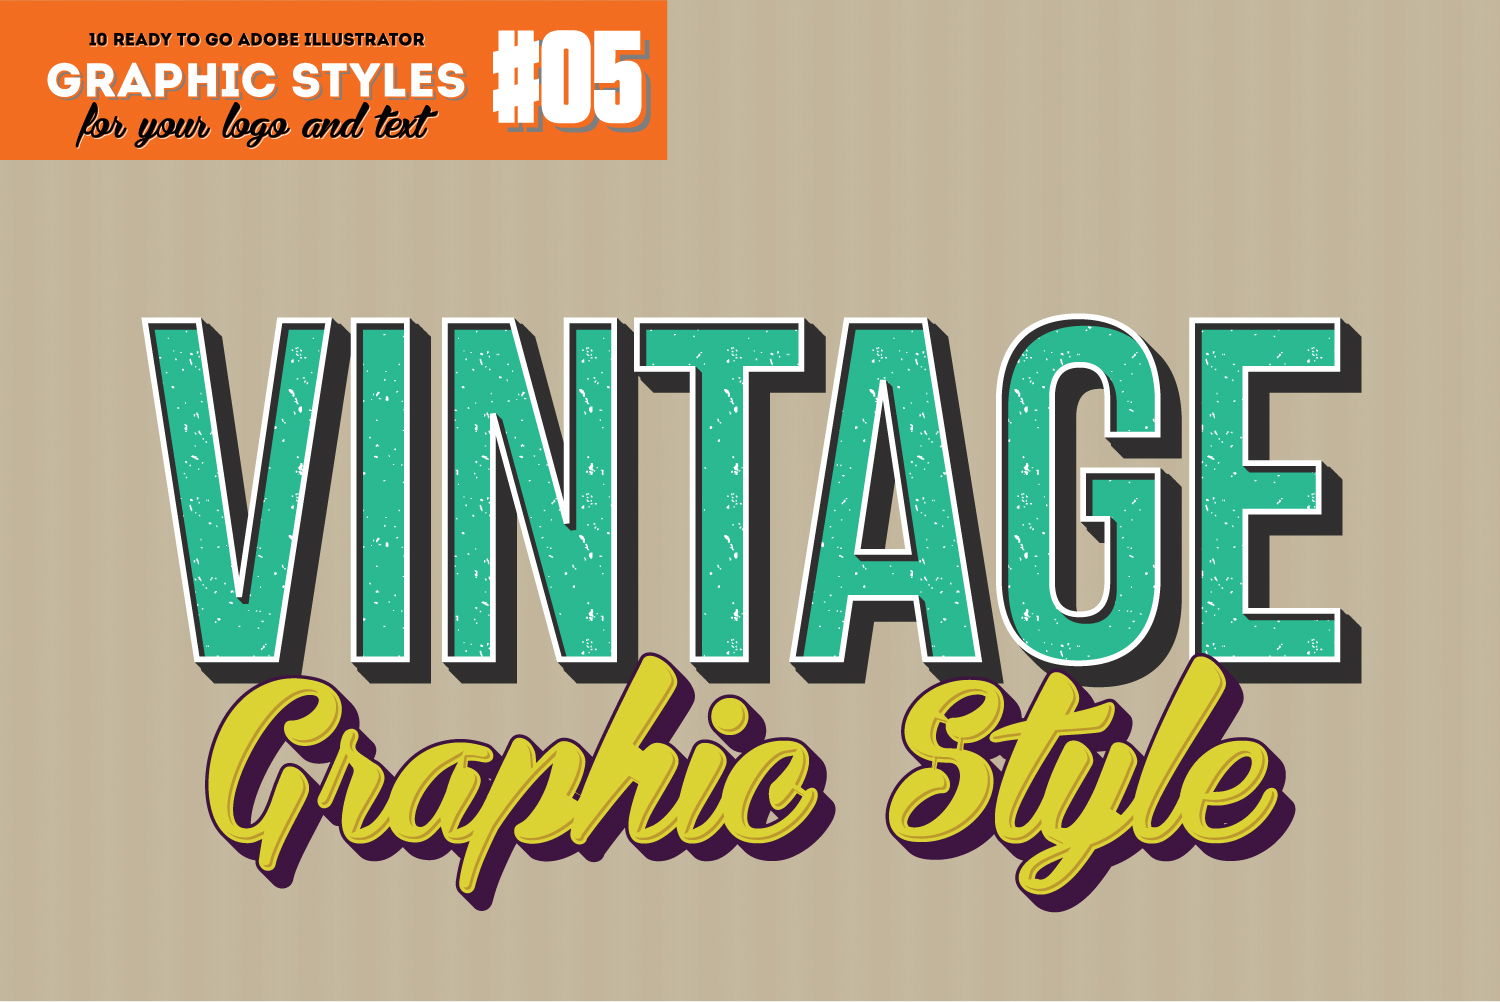 10 Retro Vintage Style for Adobe Illustrator example image 1